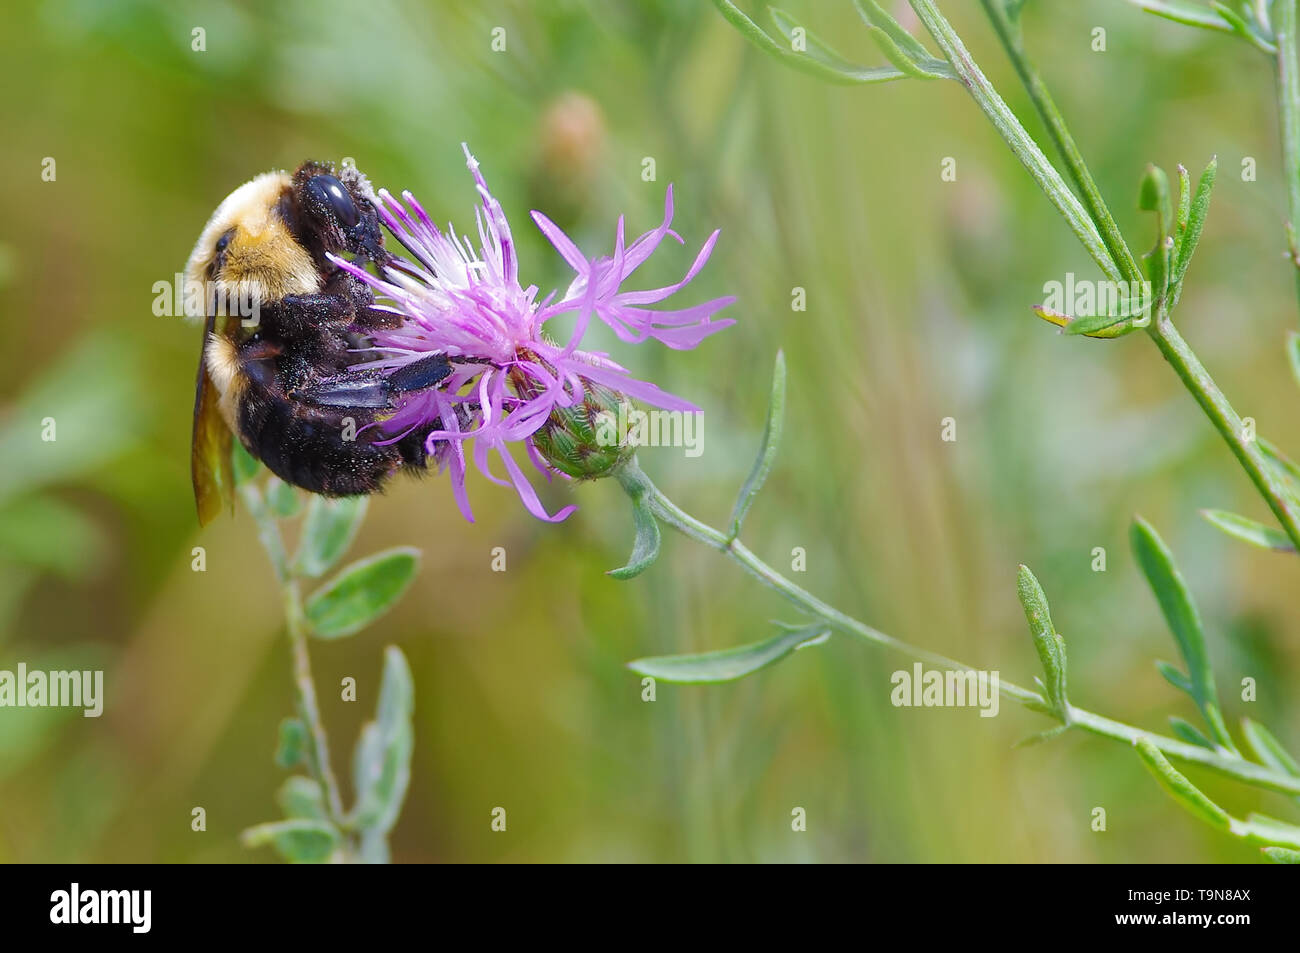 Bumble bee species feeding / pollinating on a purple wildflower in the Crex Meadows Wildlife Area in Northern Wisconsin - Stock Image